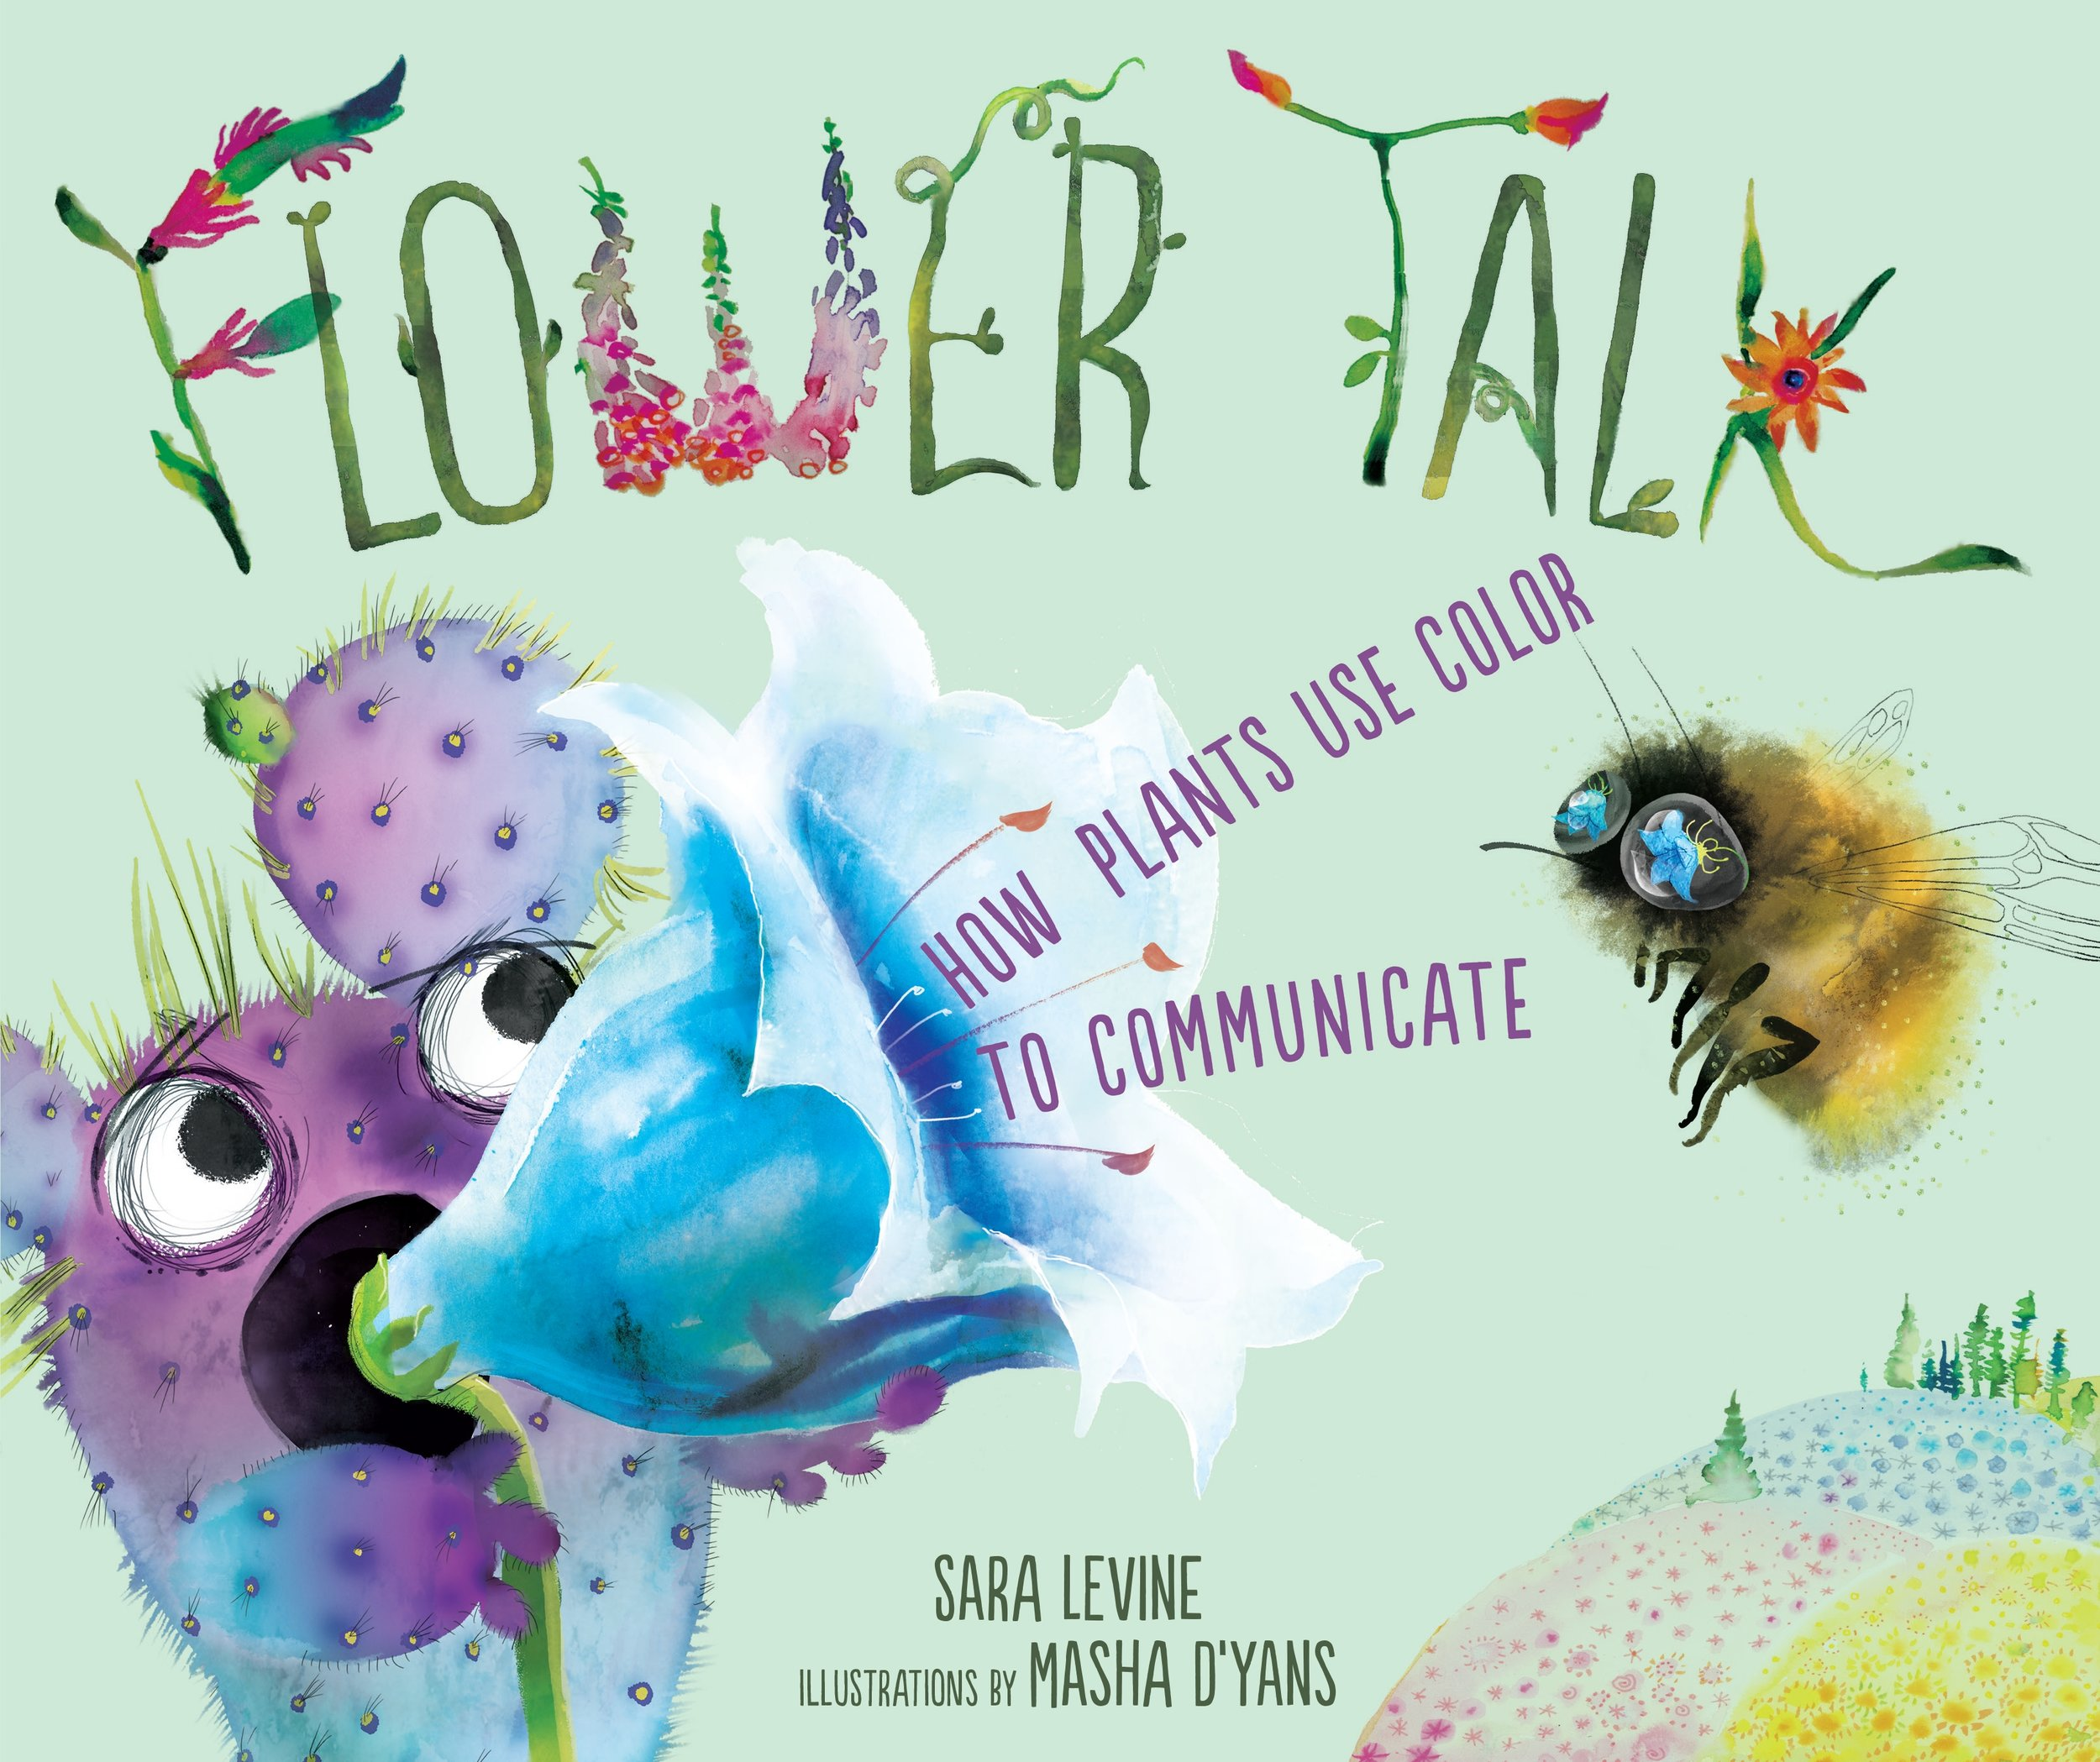 Flower Talk - This new book from Sara Levine features a cantankerous talking cactus as a narrator, revealing to readers the significance of different colors of flowers in terms of which pollinators (bees, bats, birds, etc.) different colors